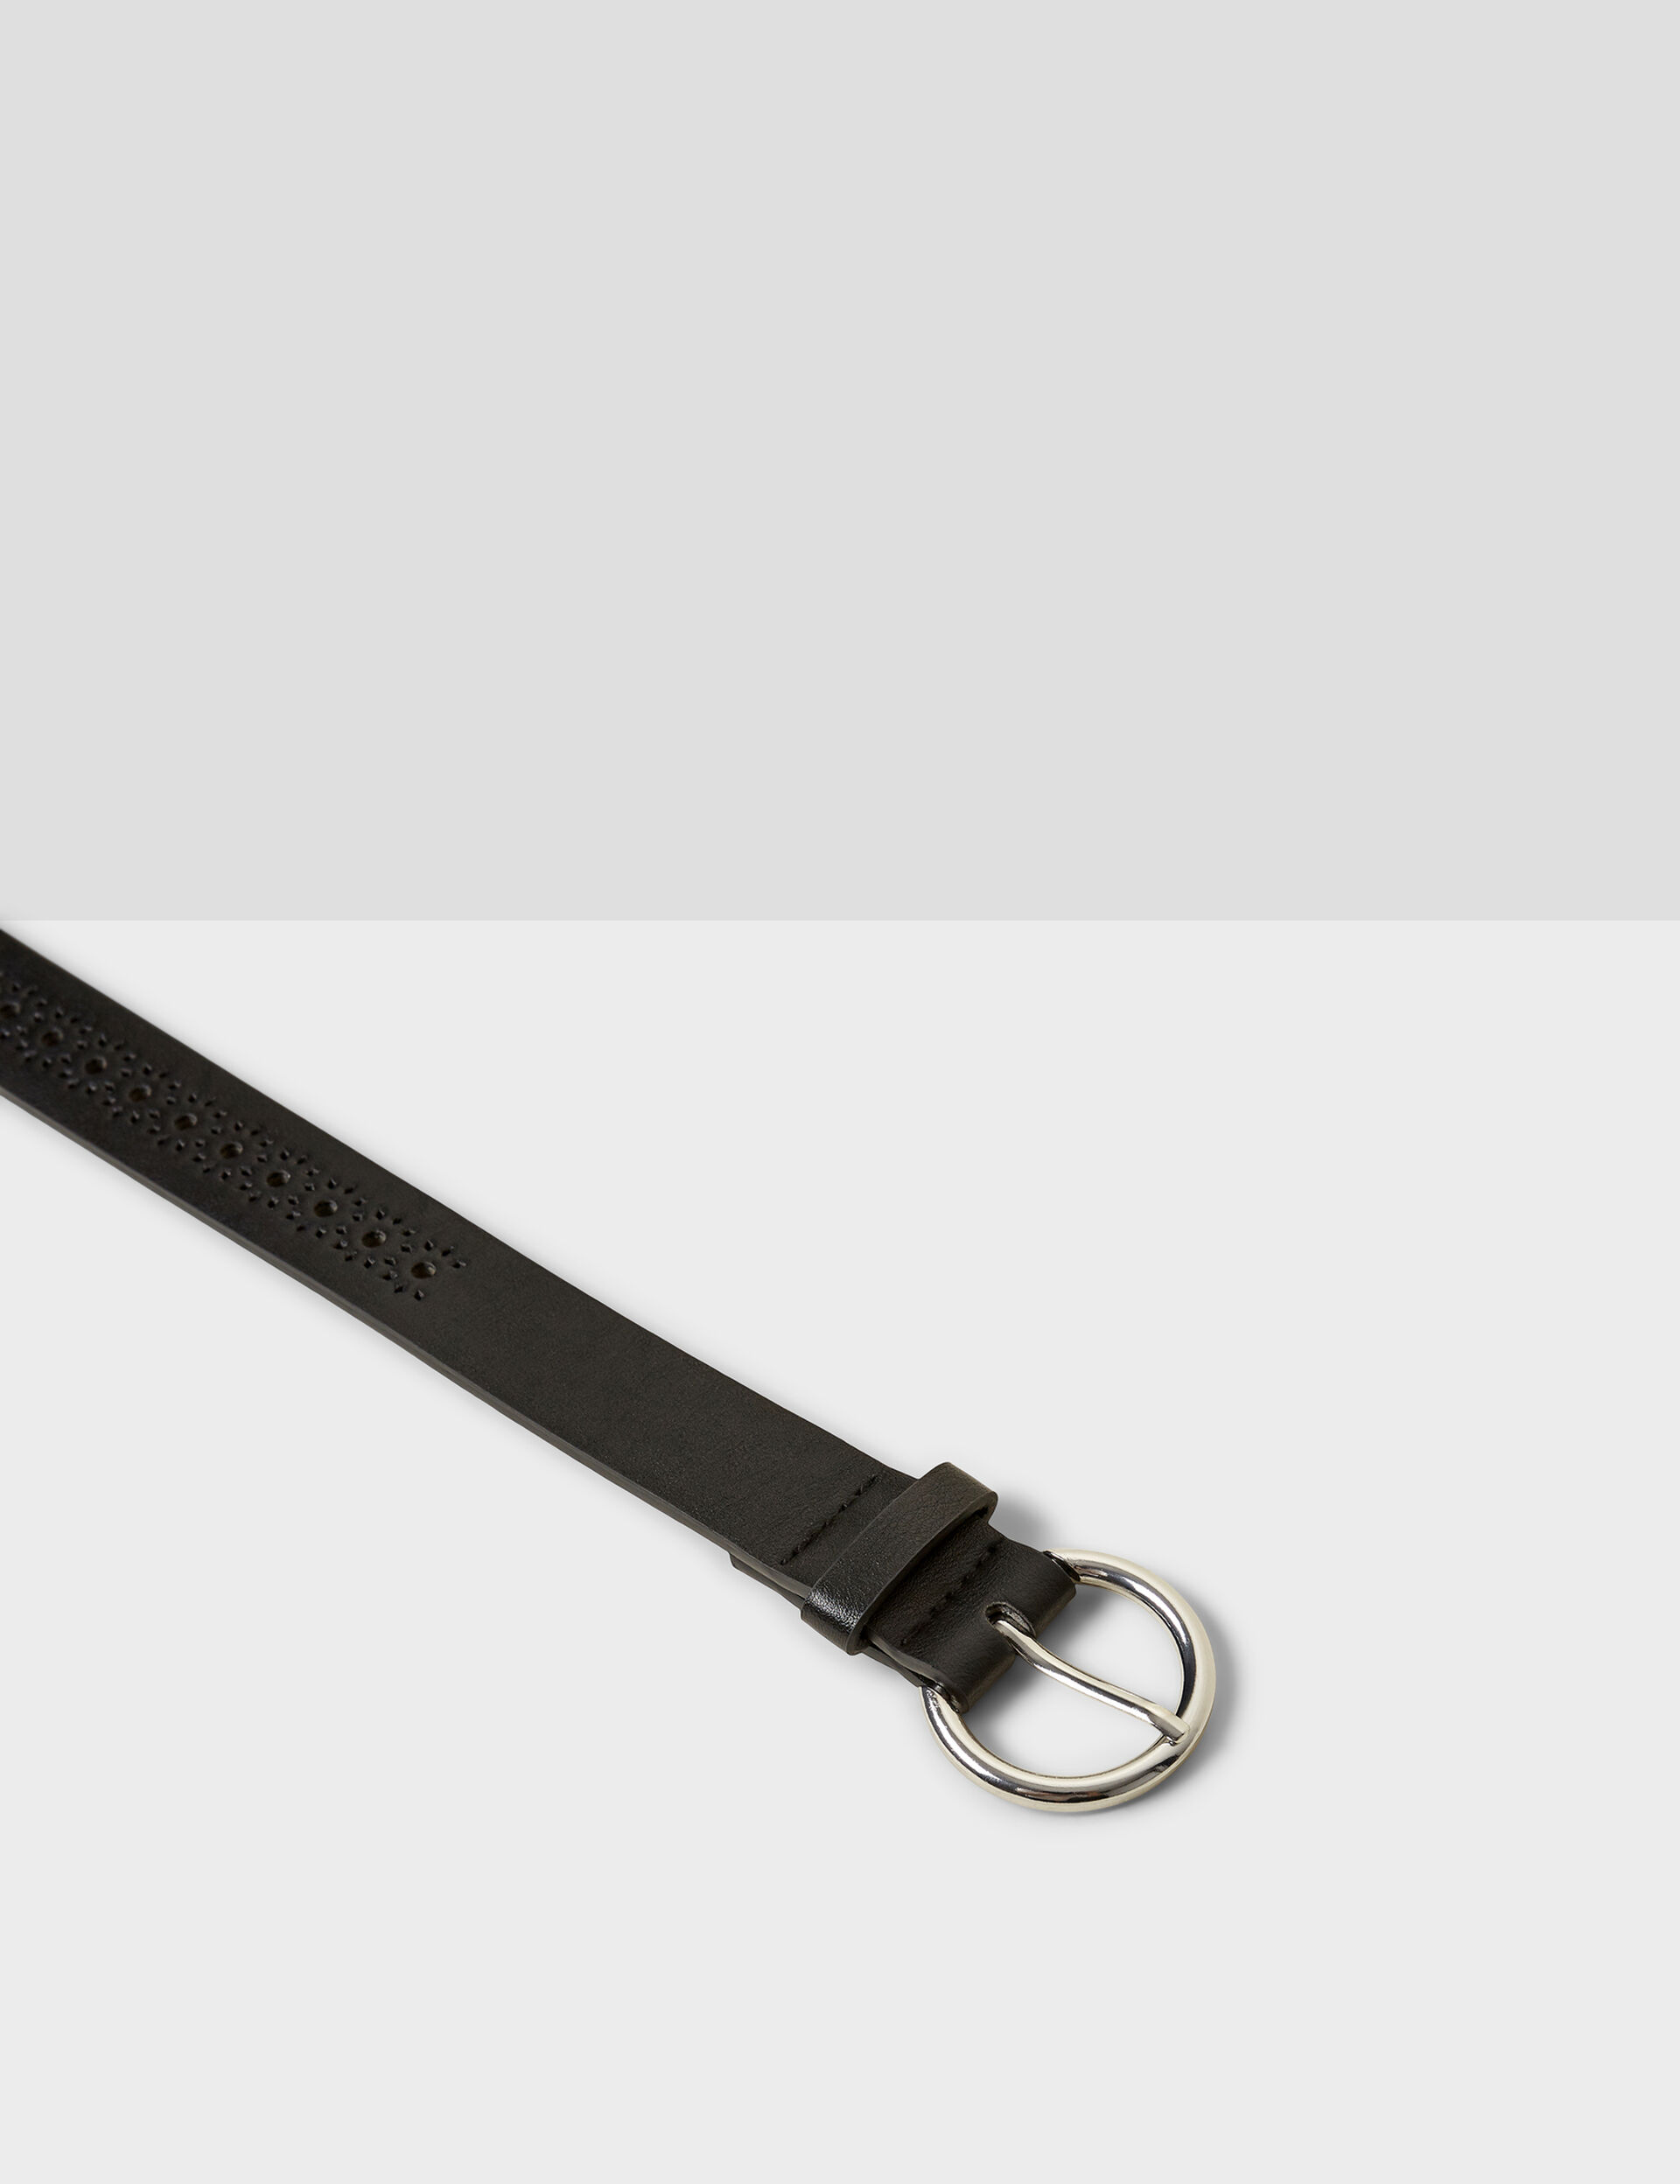 Fancy perforated belt